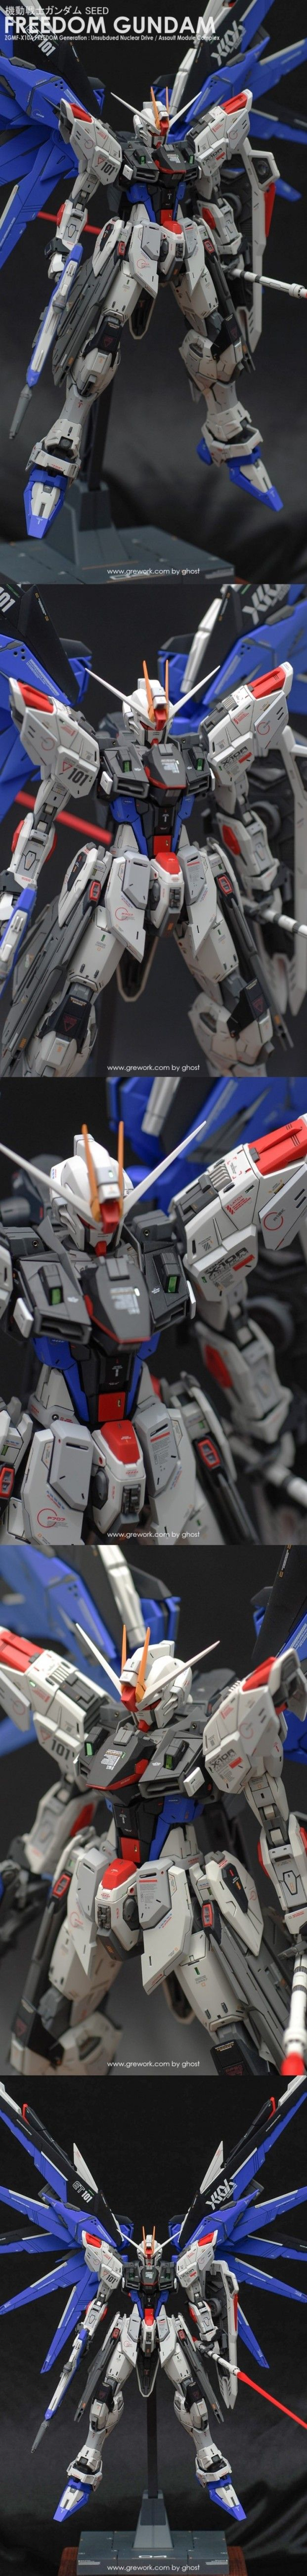 POINTNET.COM.HK - 高手作品 MG 1/100 Freedom Gundam ver 2.0